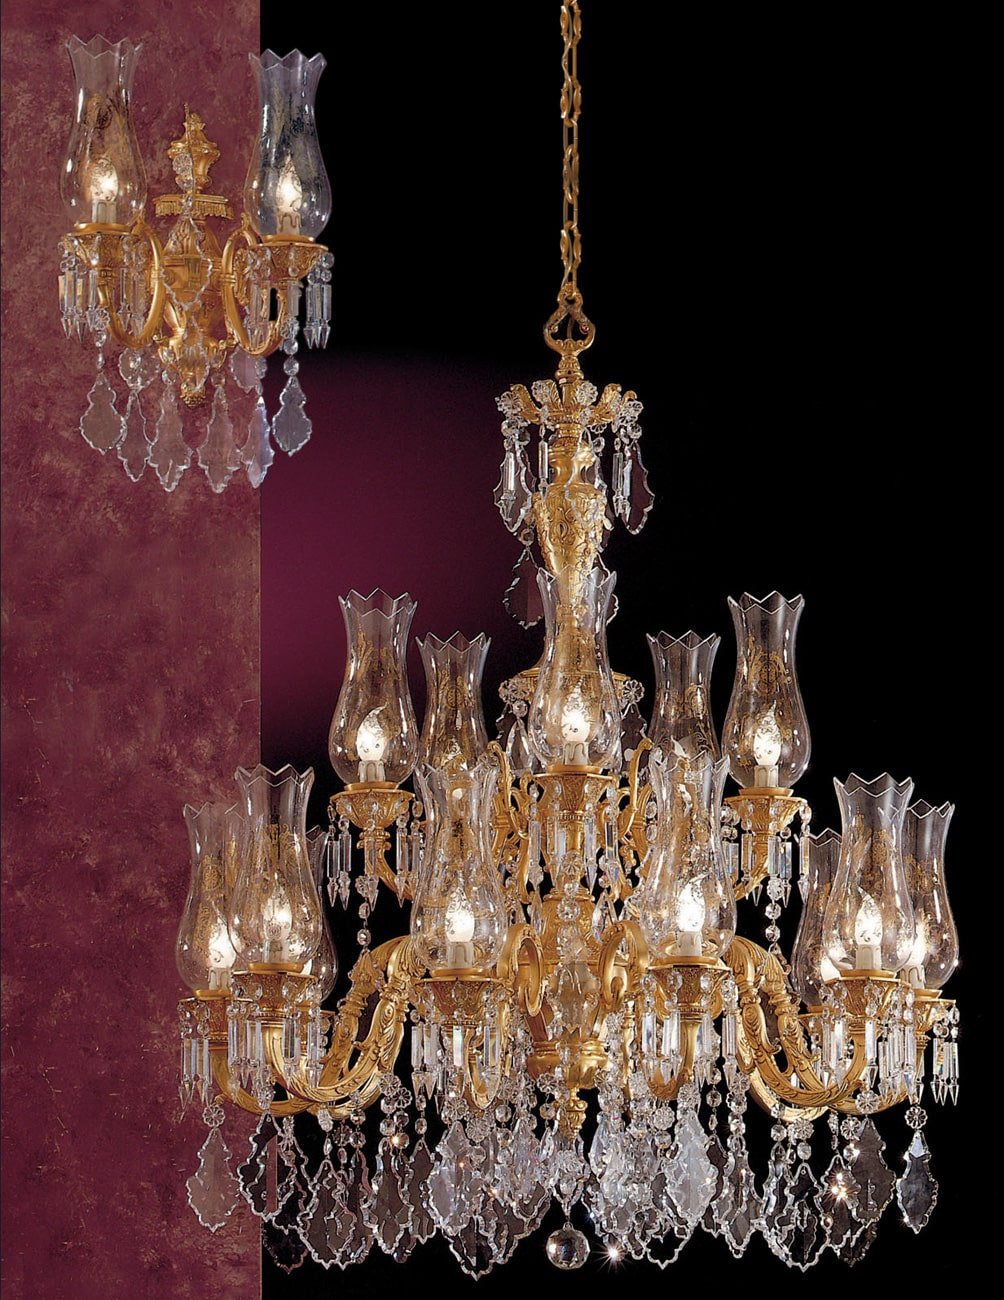 decorative lighting chandeliers 59